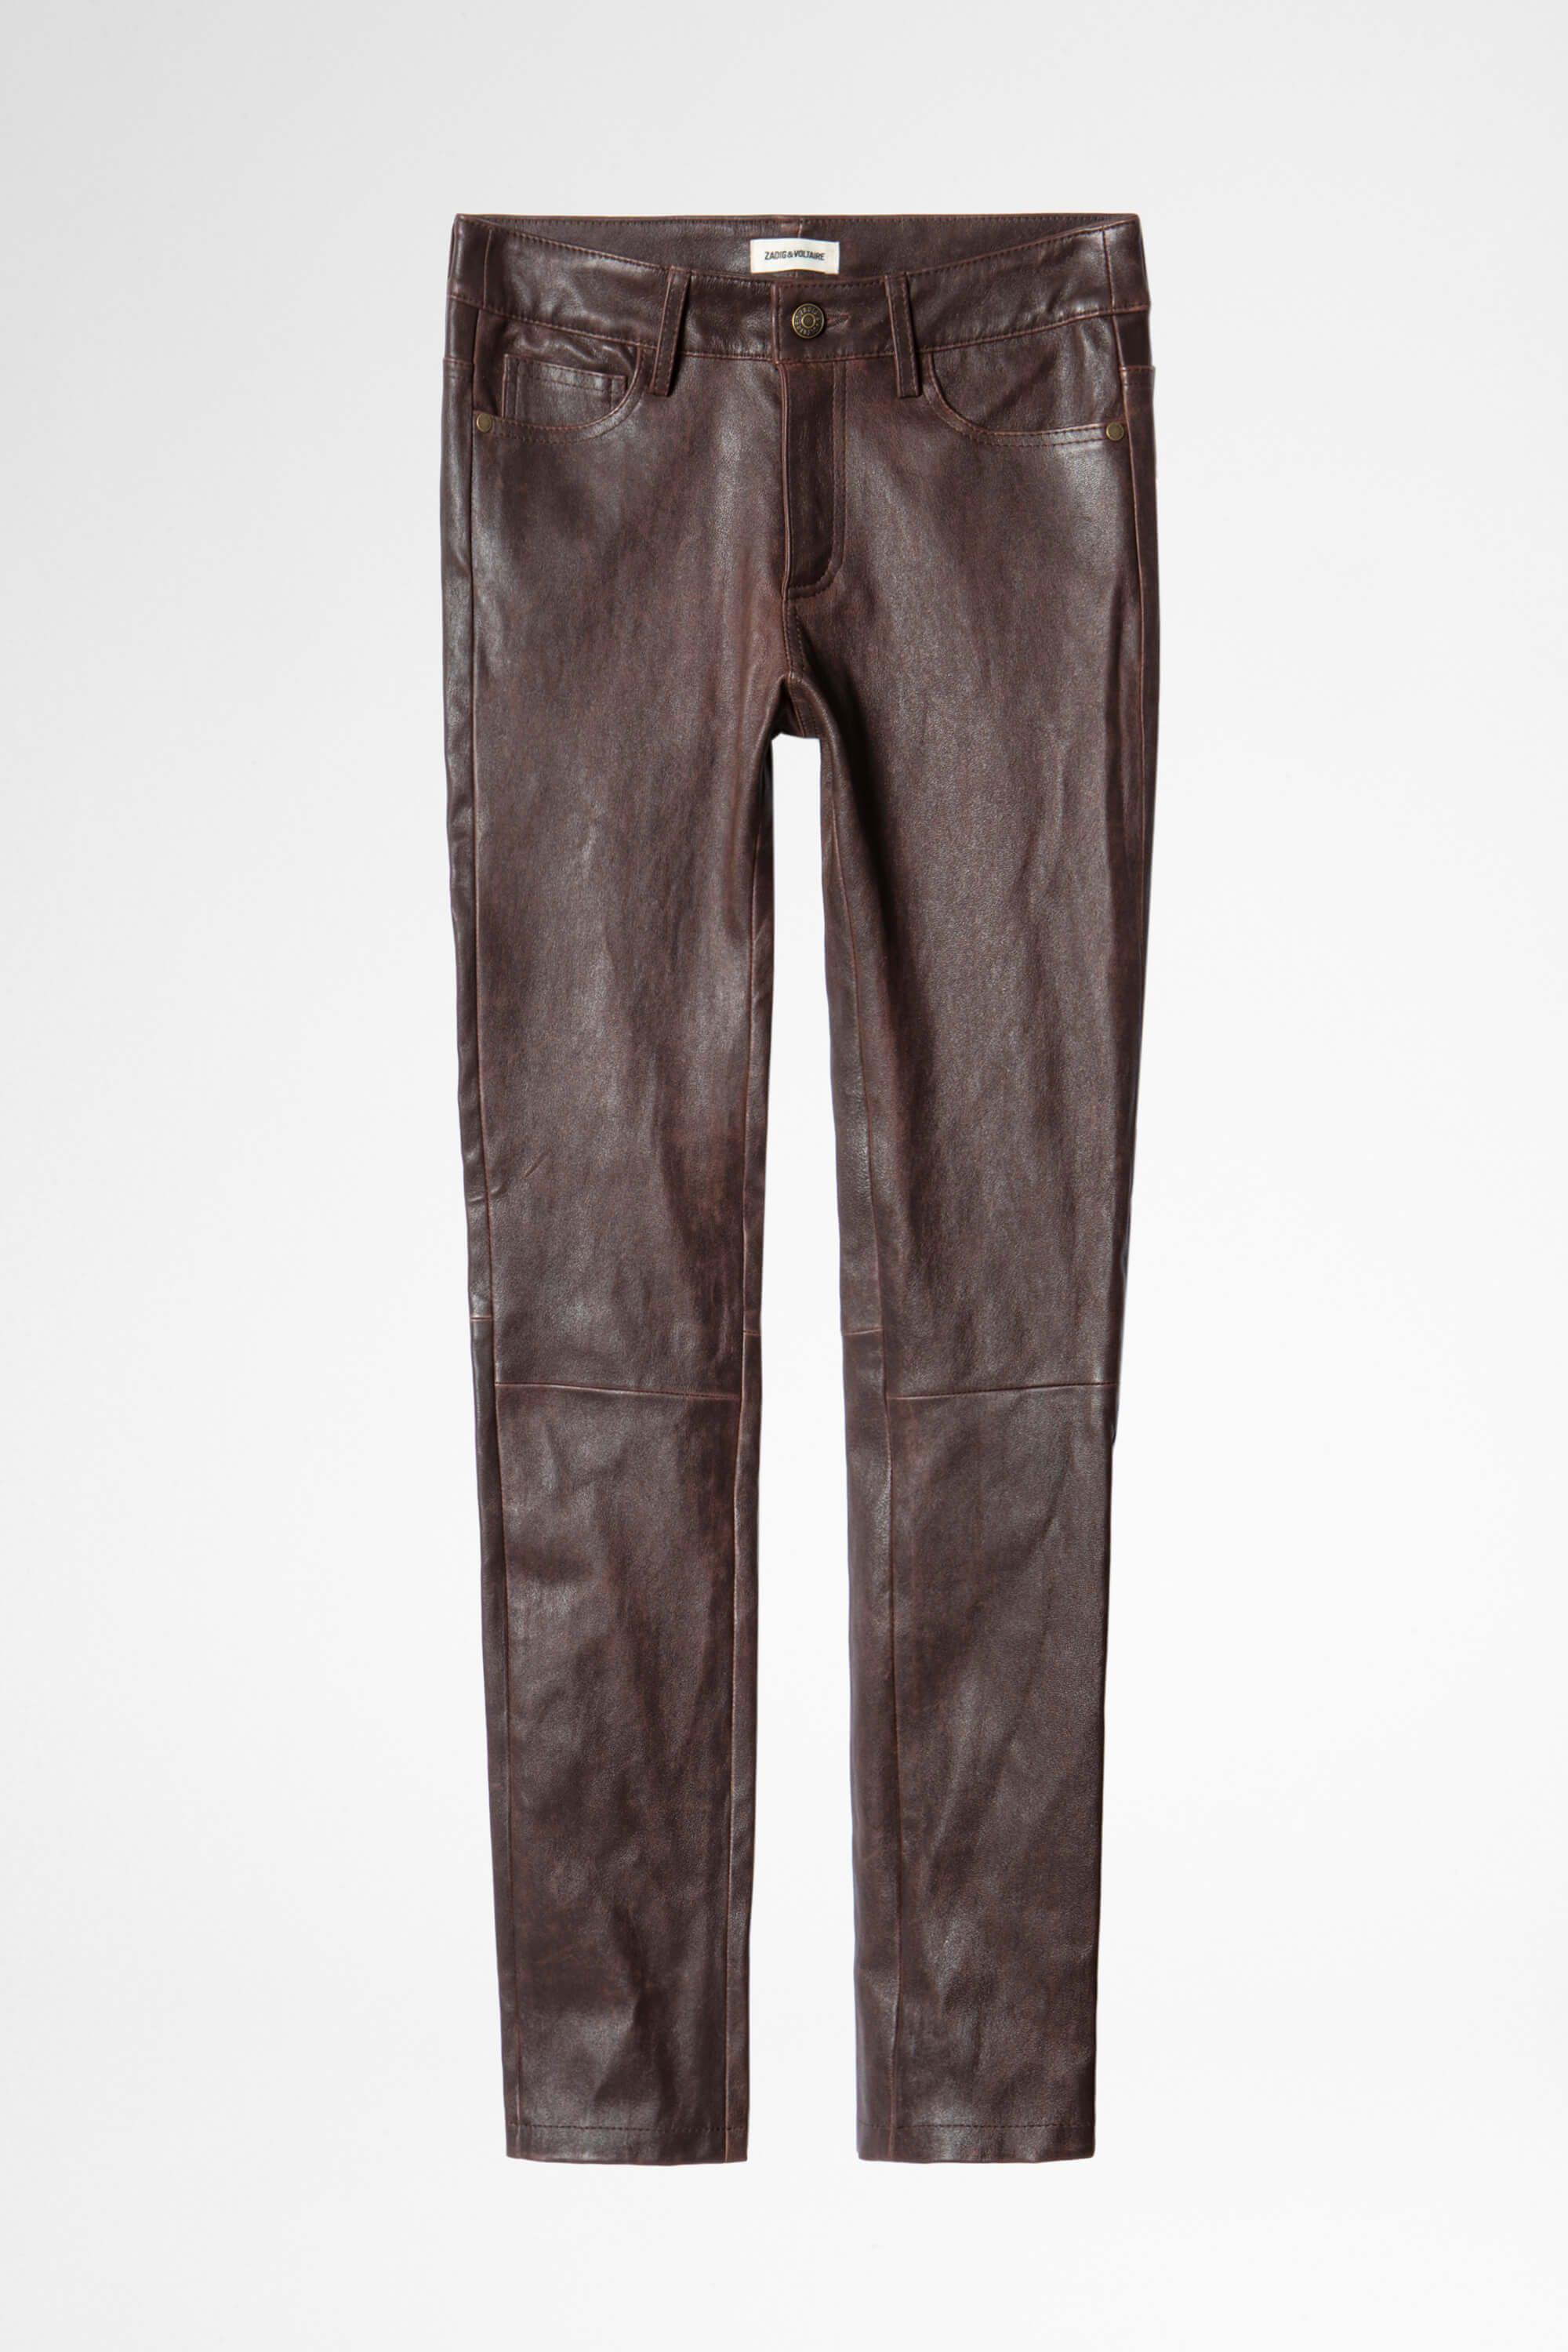 Phlame Leather Used Pants 5